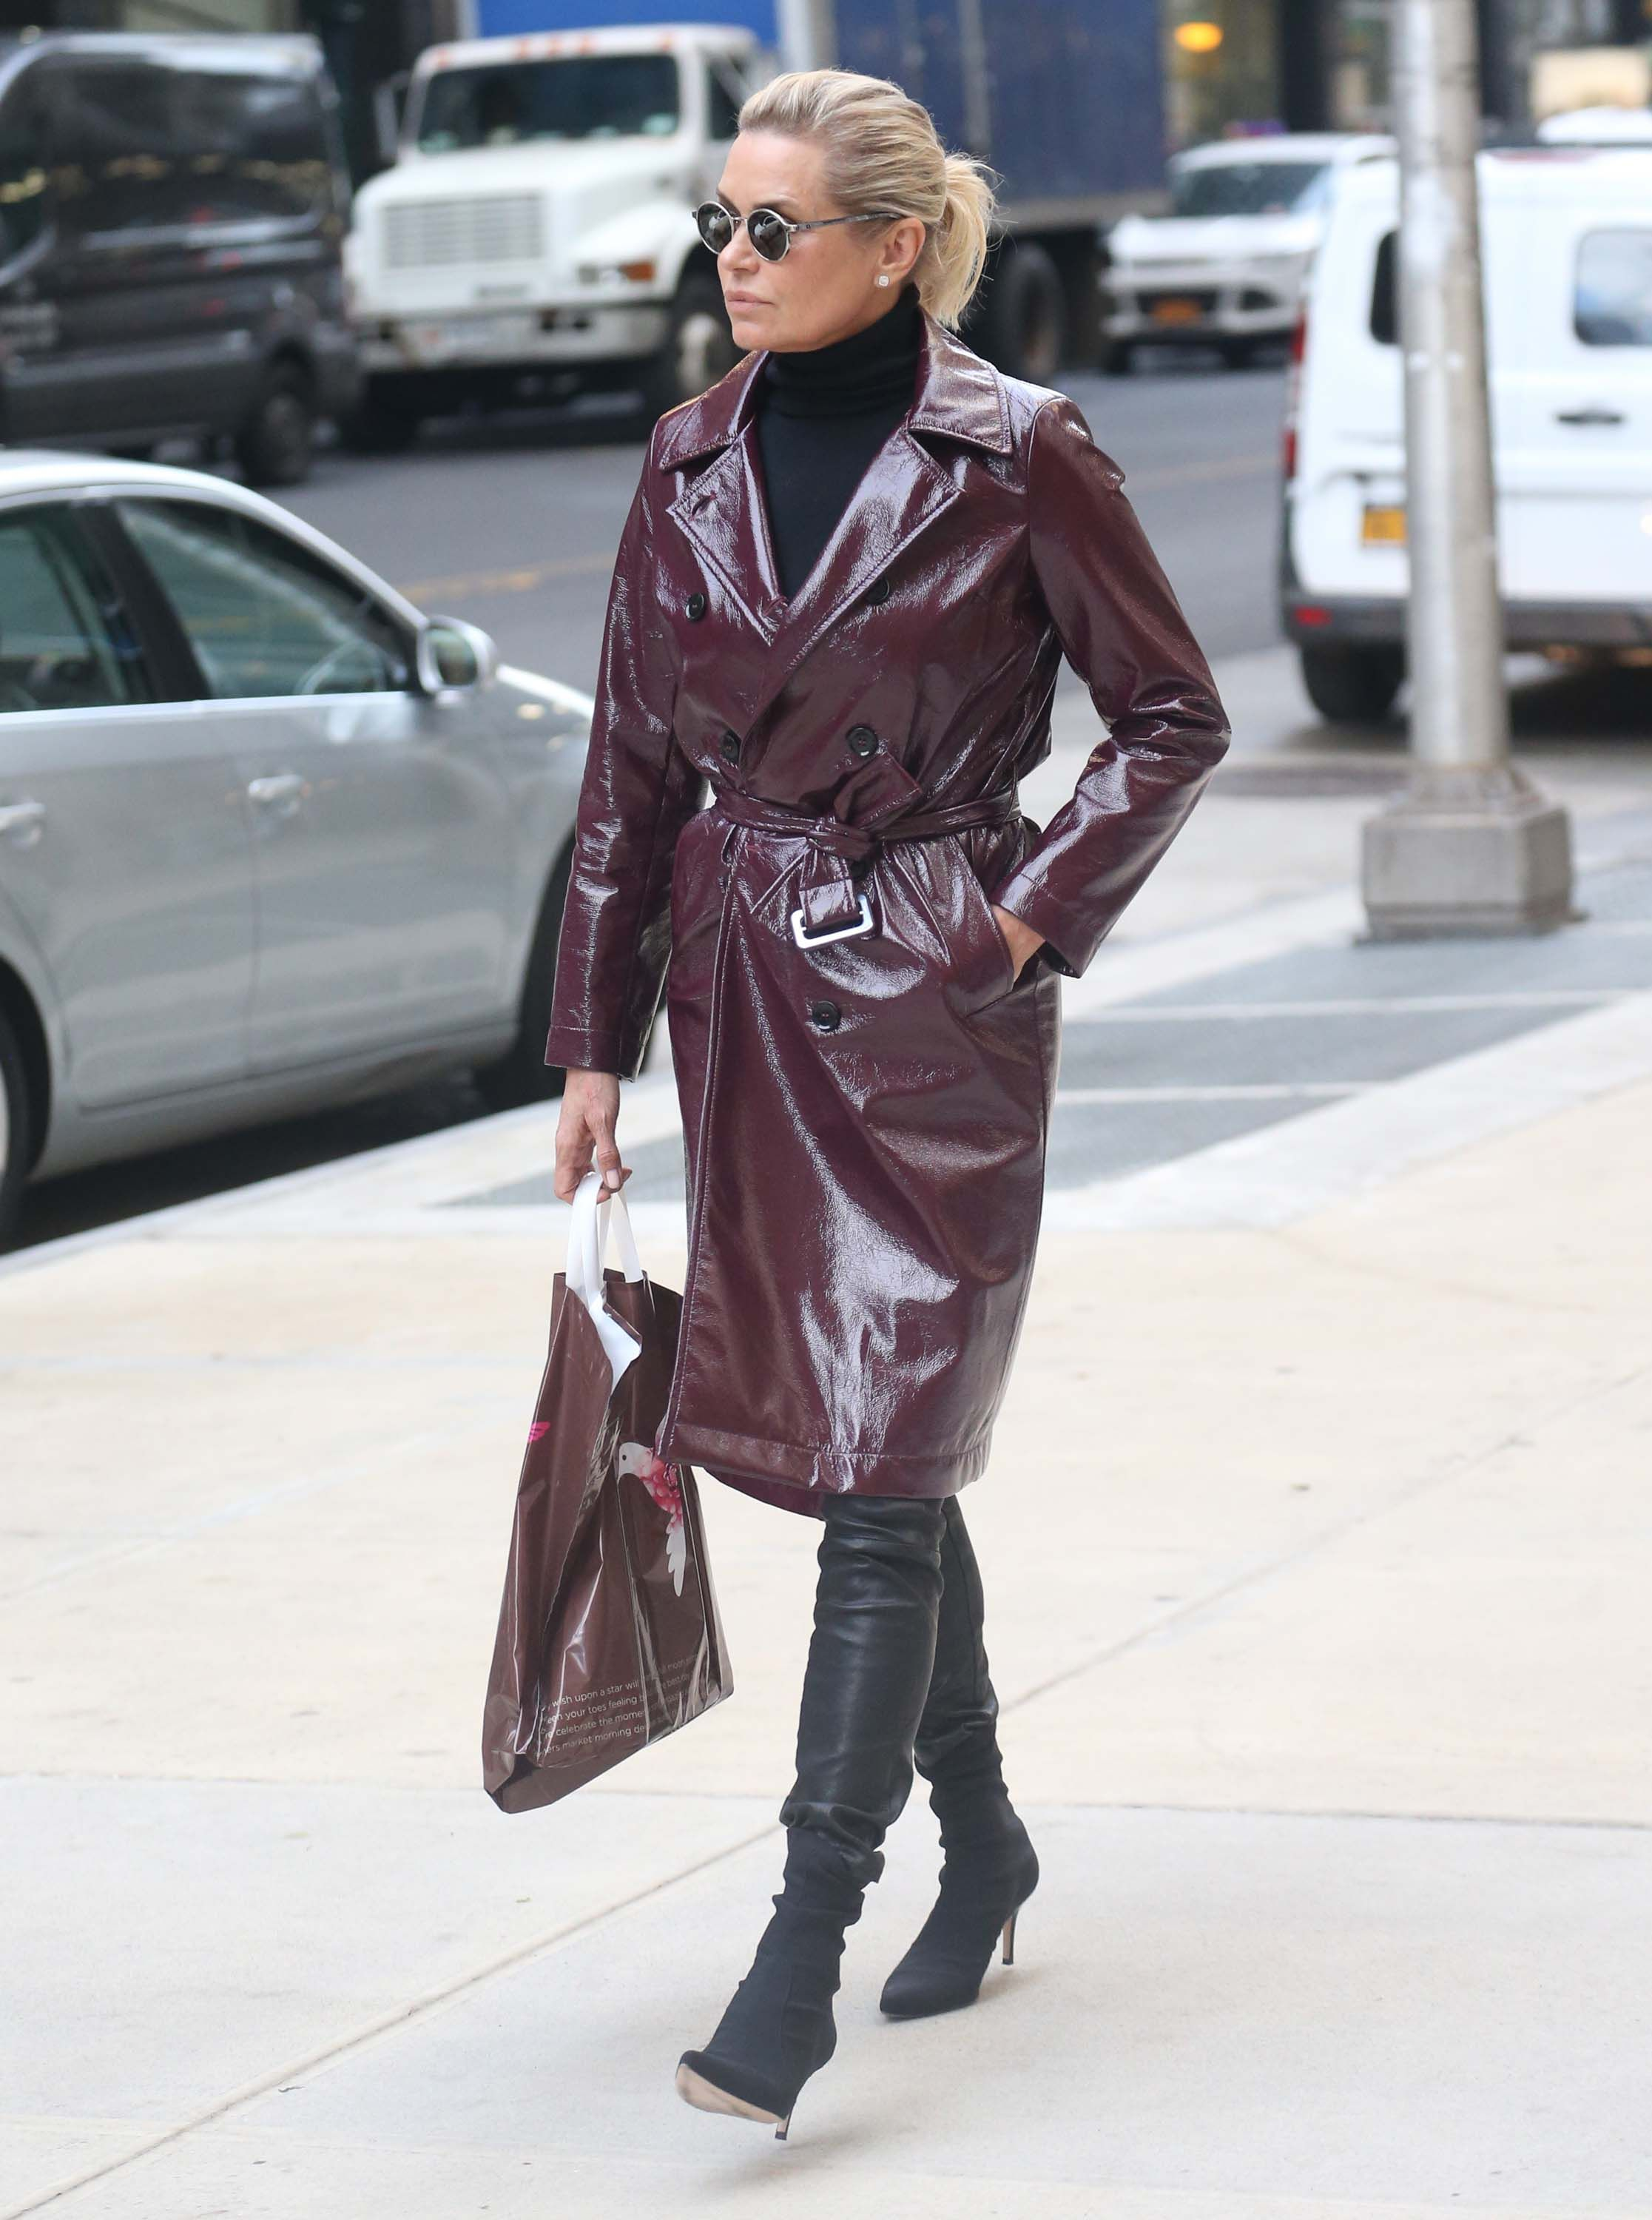 fe93b0f903 Yolanda Hadid out and about in New York